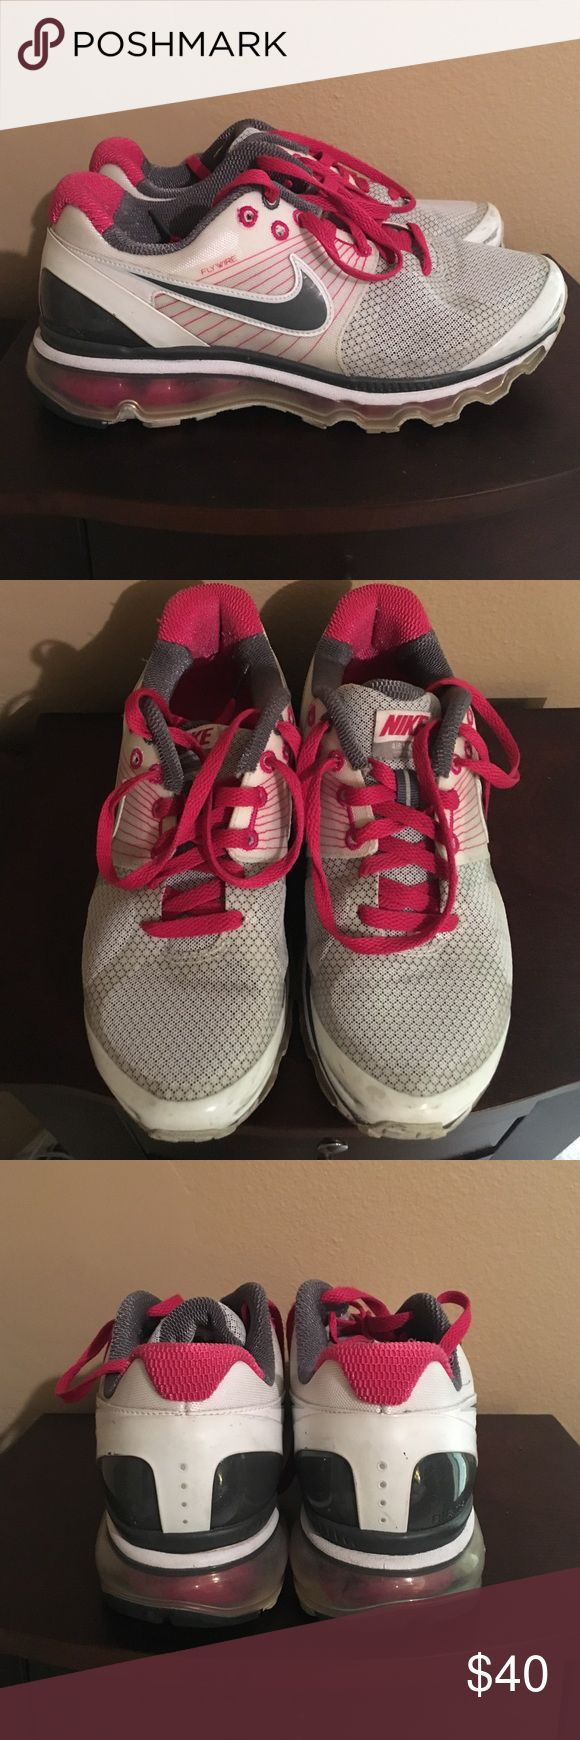 Nike Air Max sneakers Nike Air Max sneakers / white, grey & fuchsia pink / size 8 / gently worn Nike Shoes Sneakers